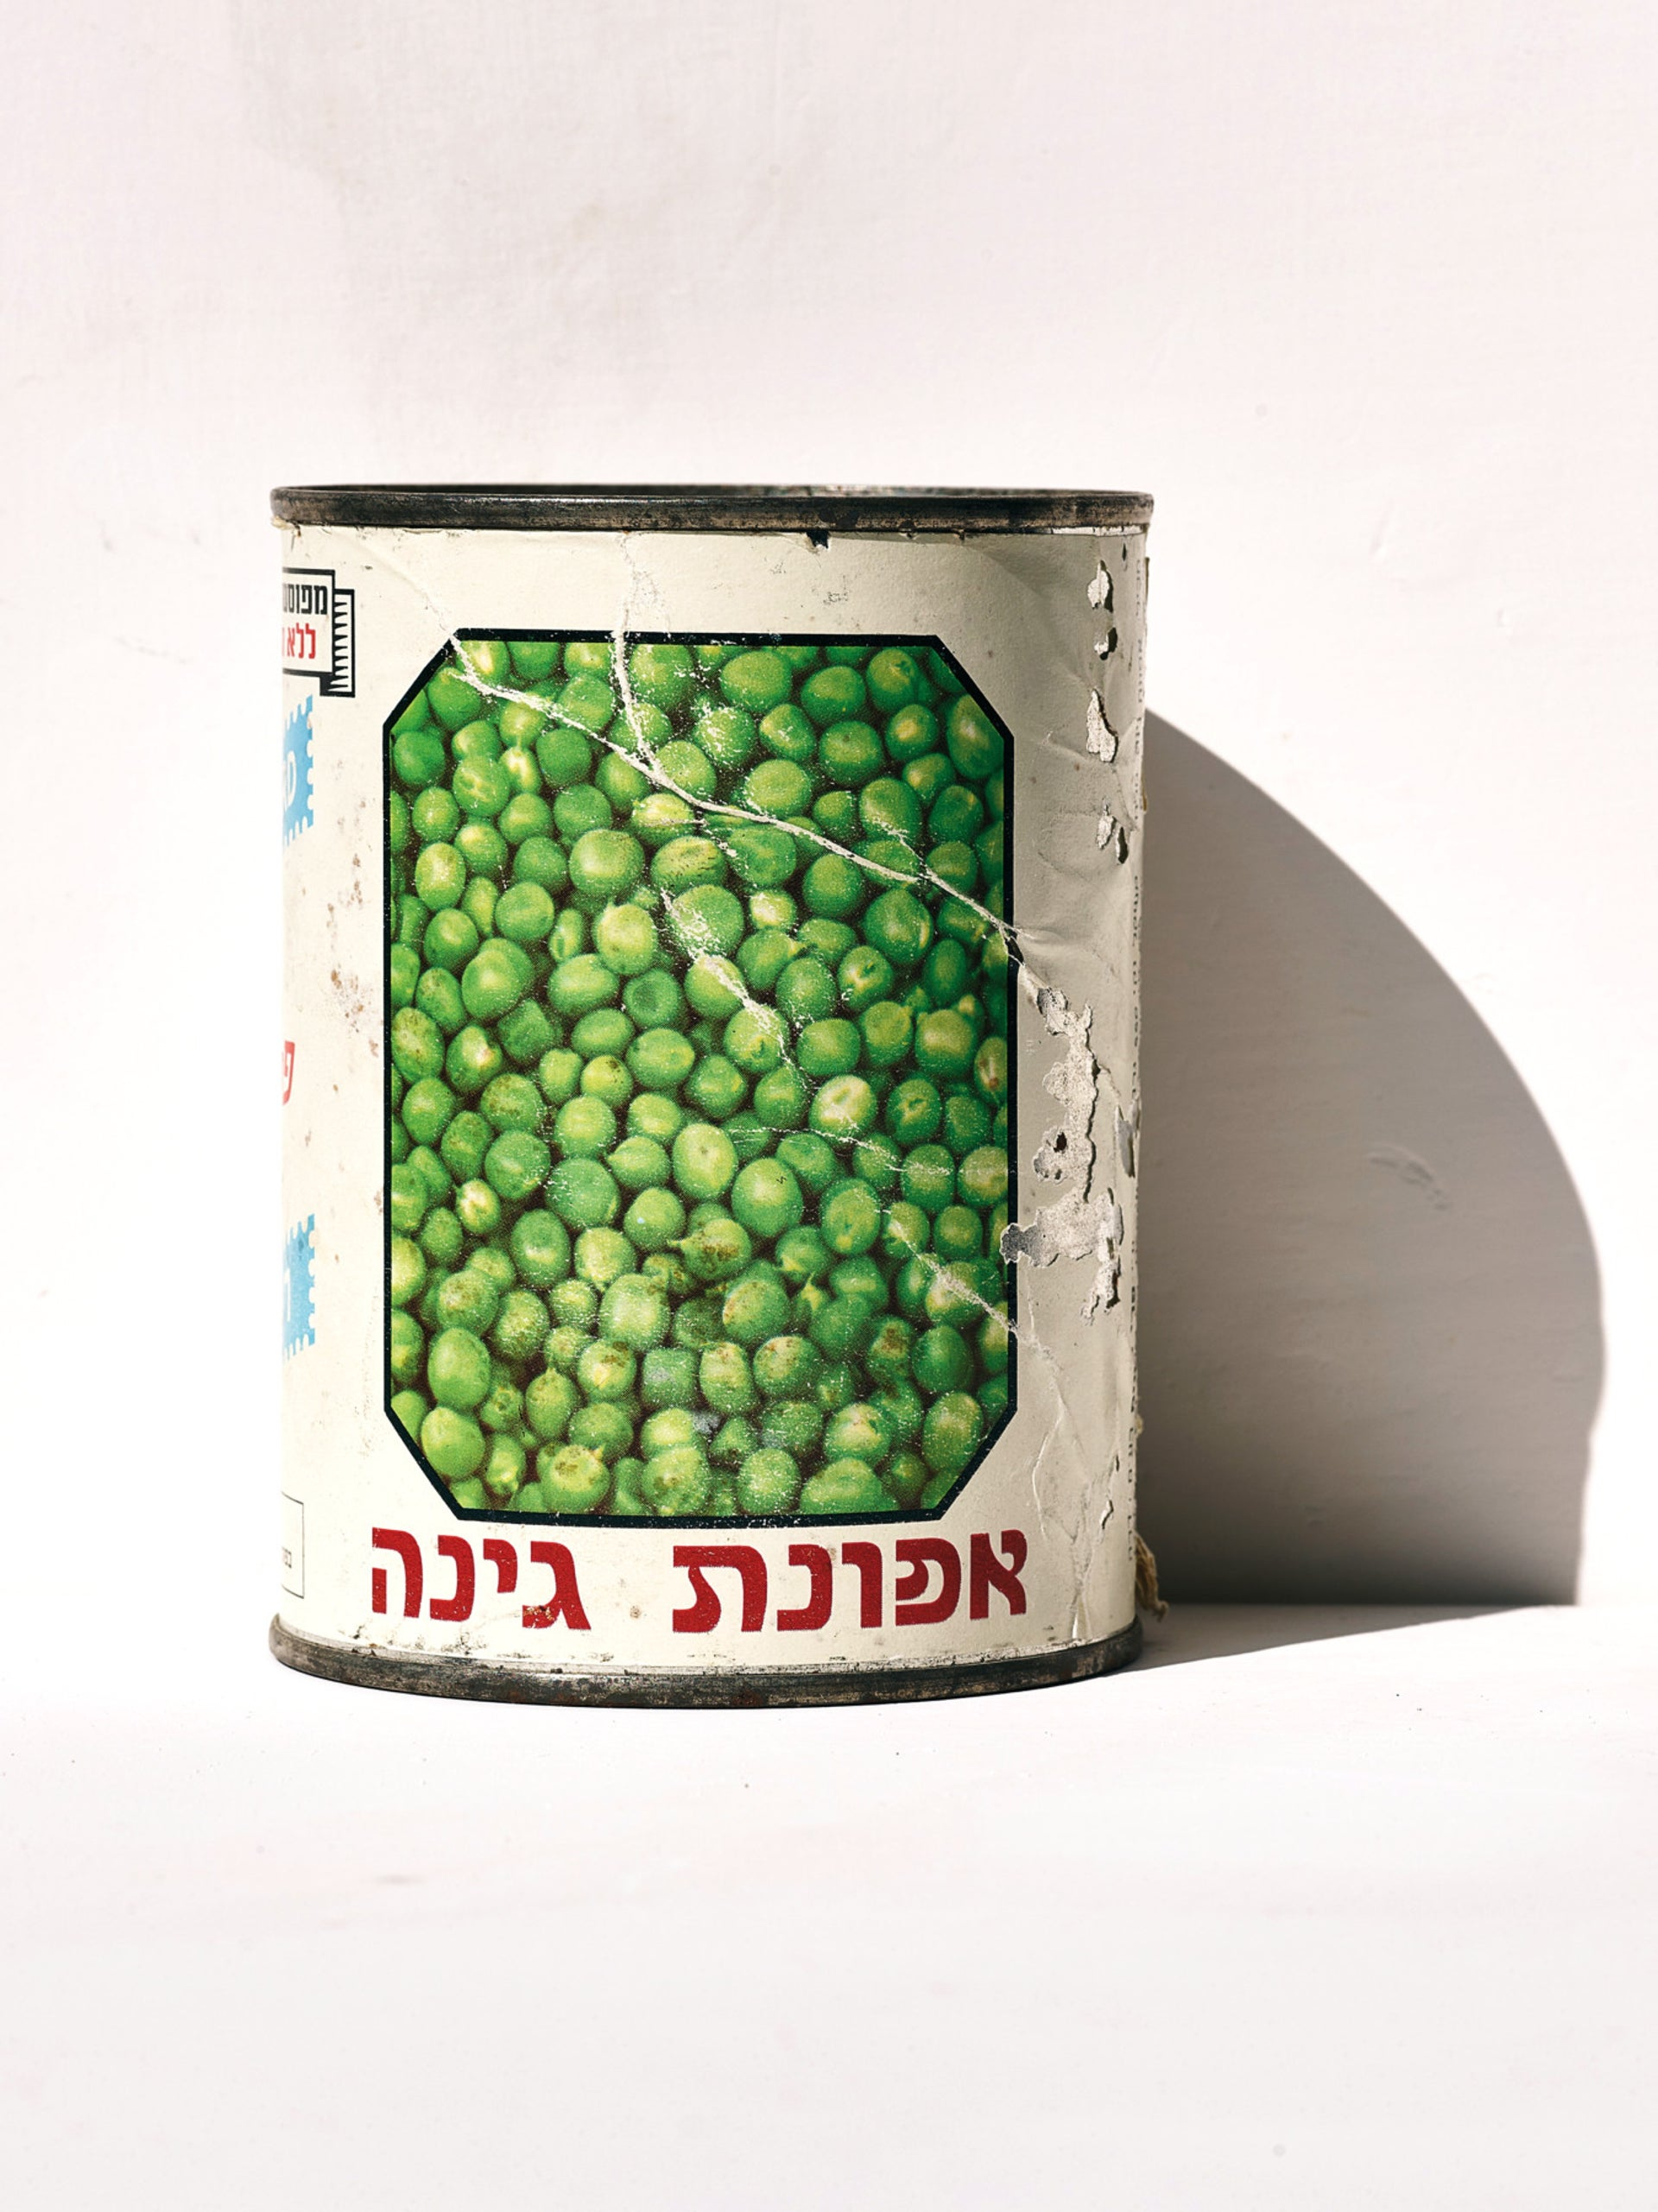 An old Israeli can of green peas.